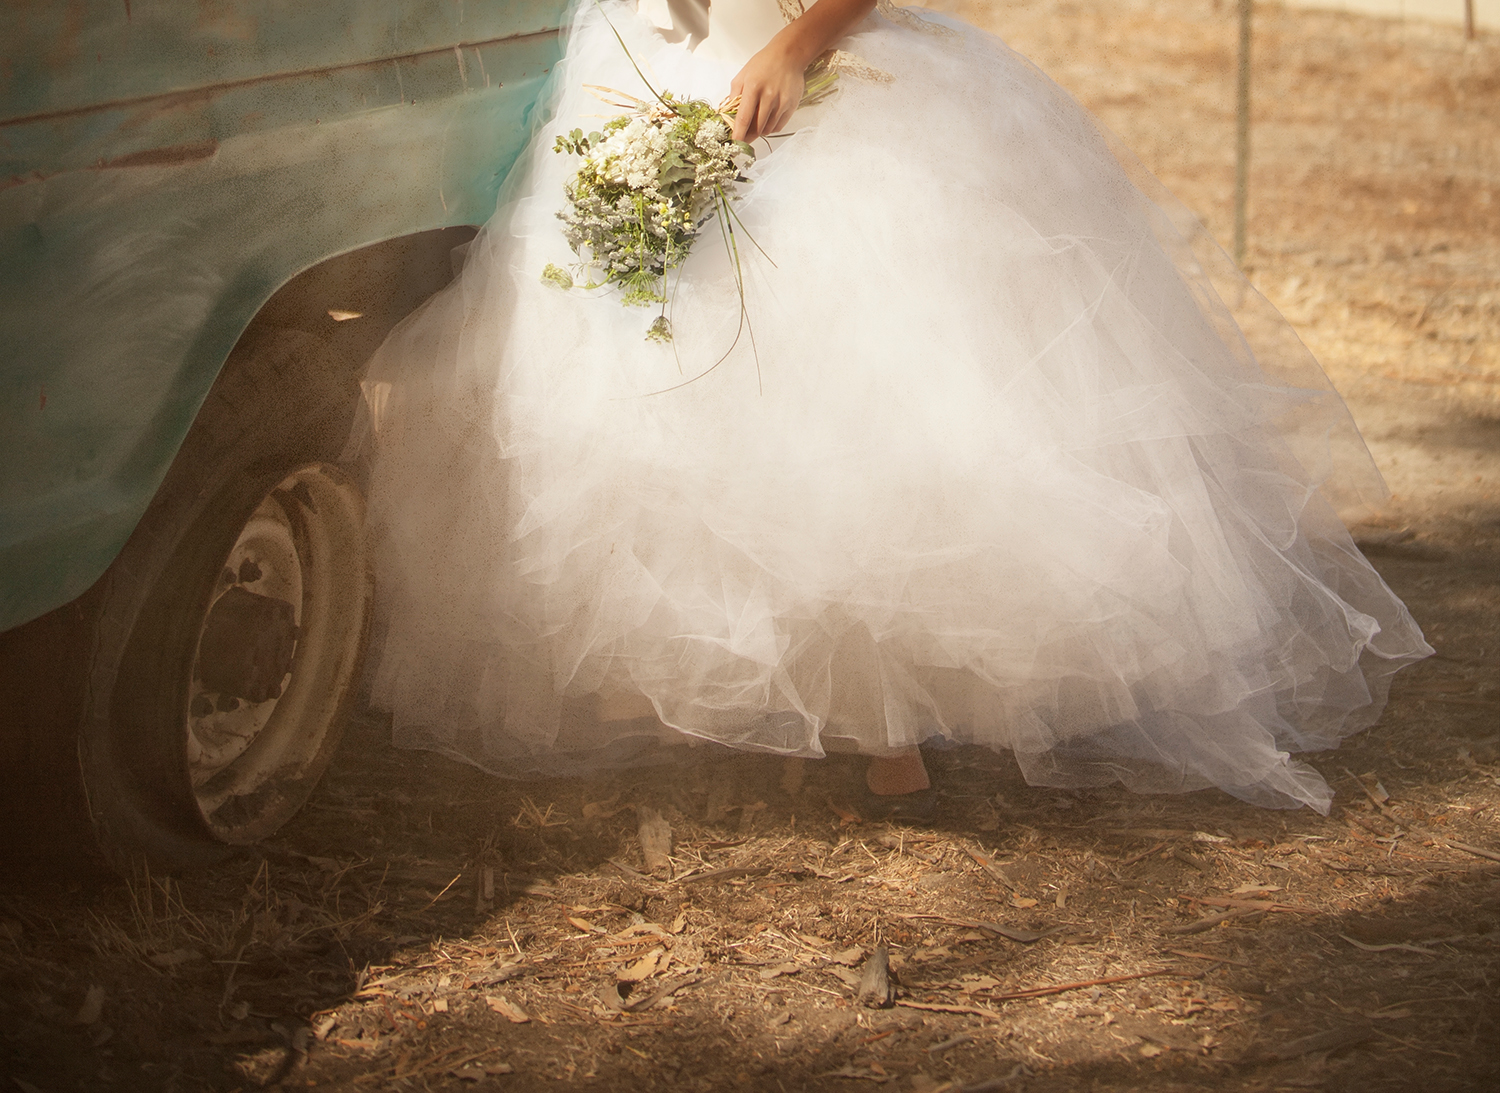 Dena_Rooney_Wedding_Photographer_Ranch_006.jpg